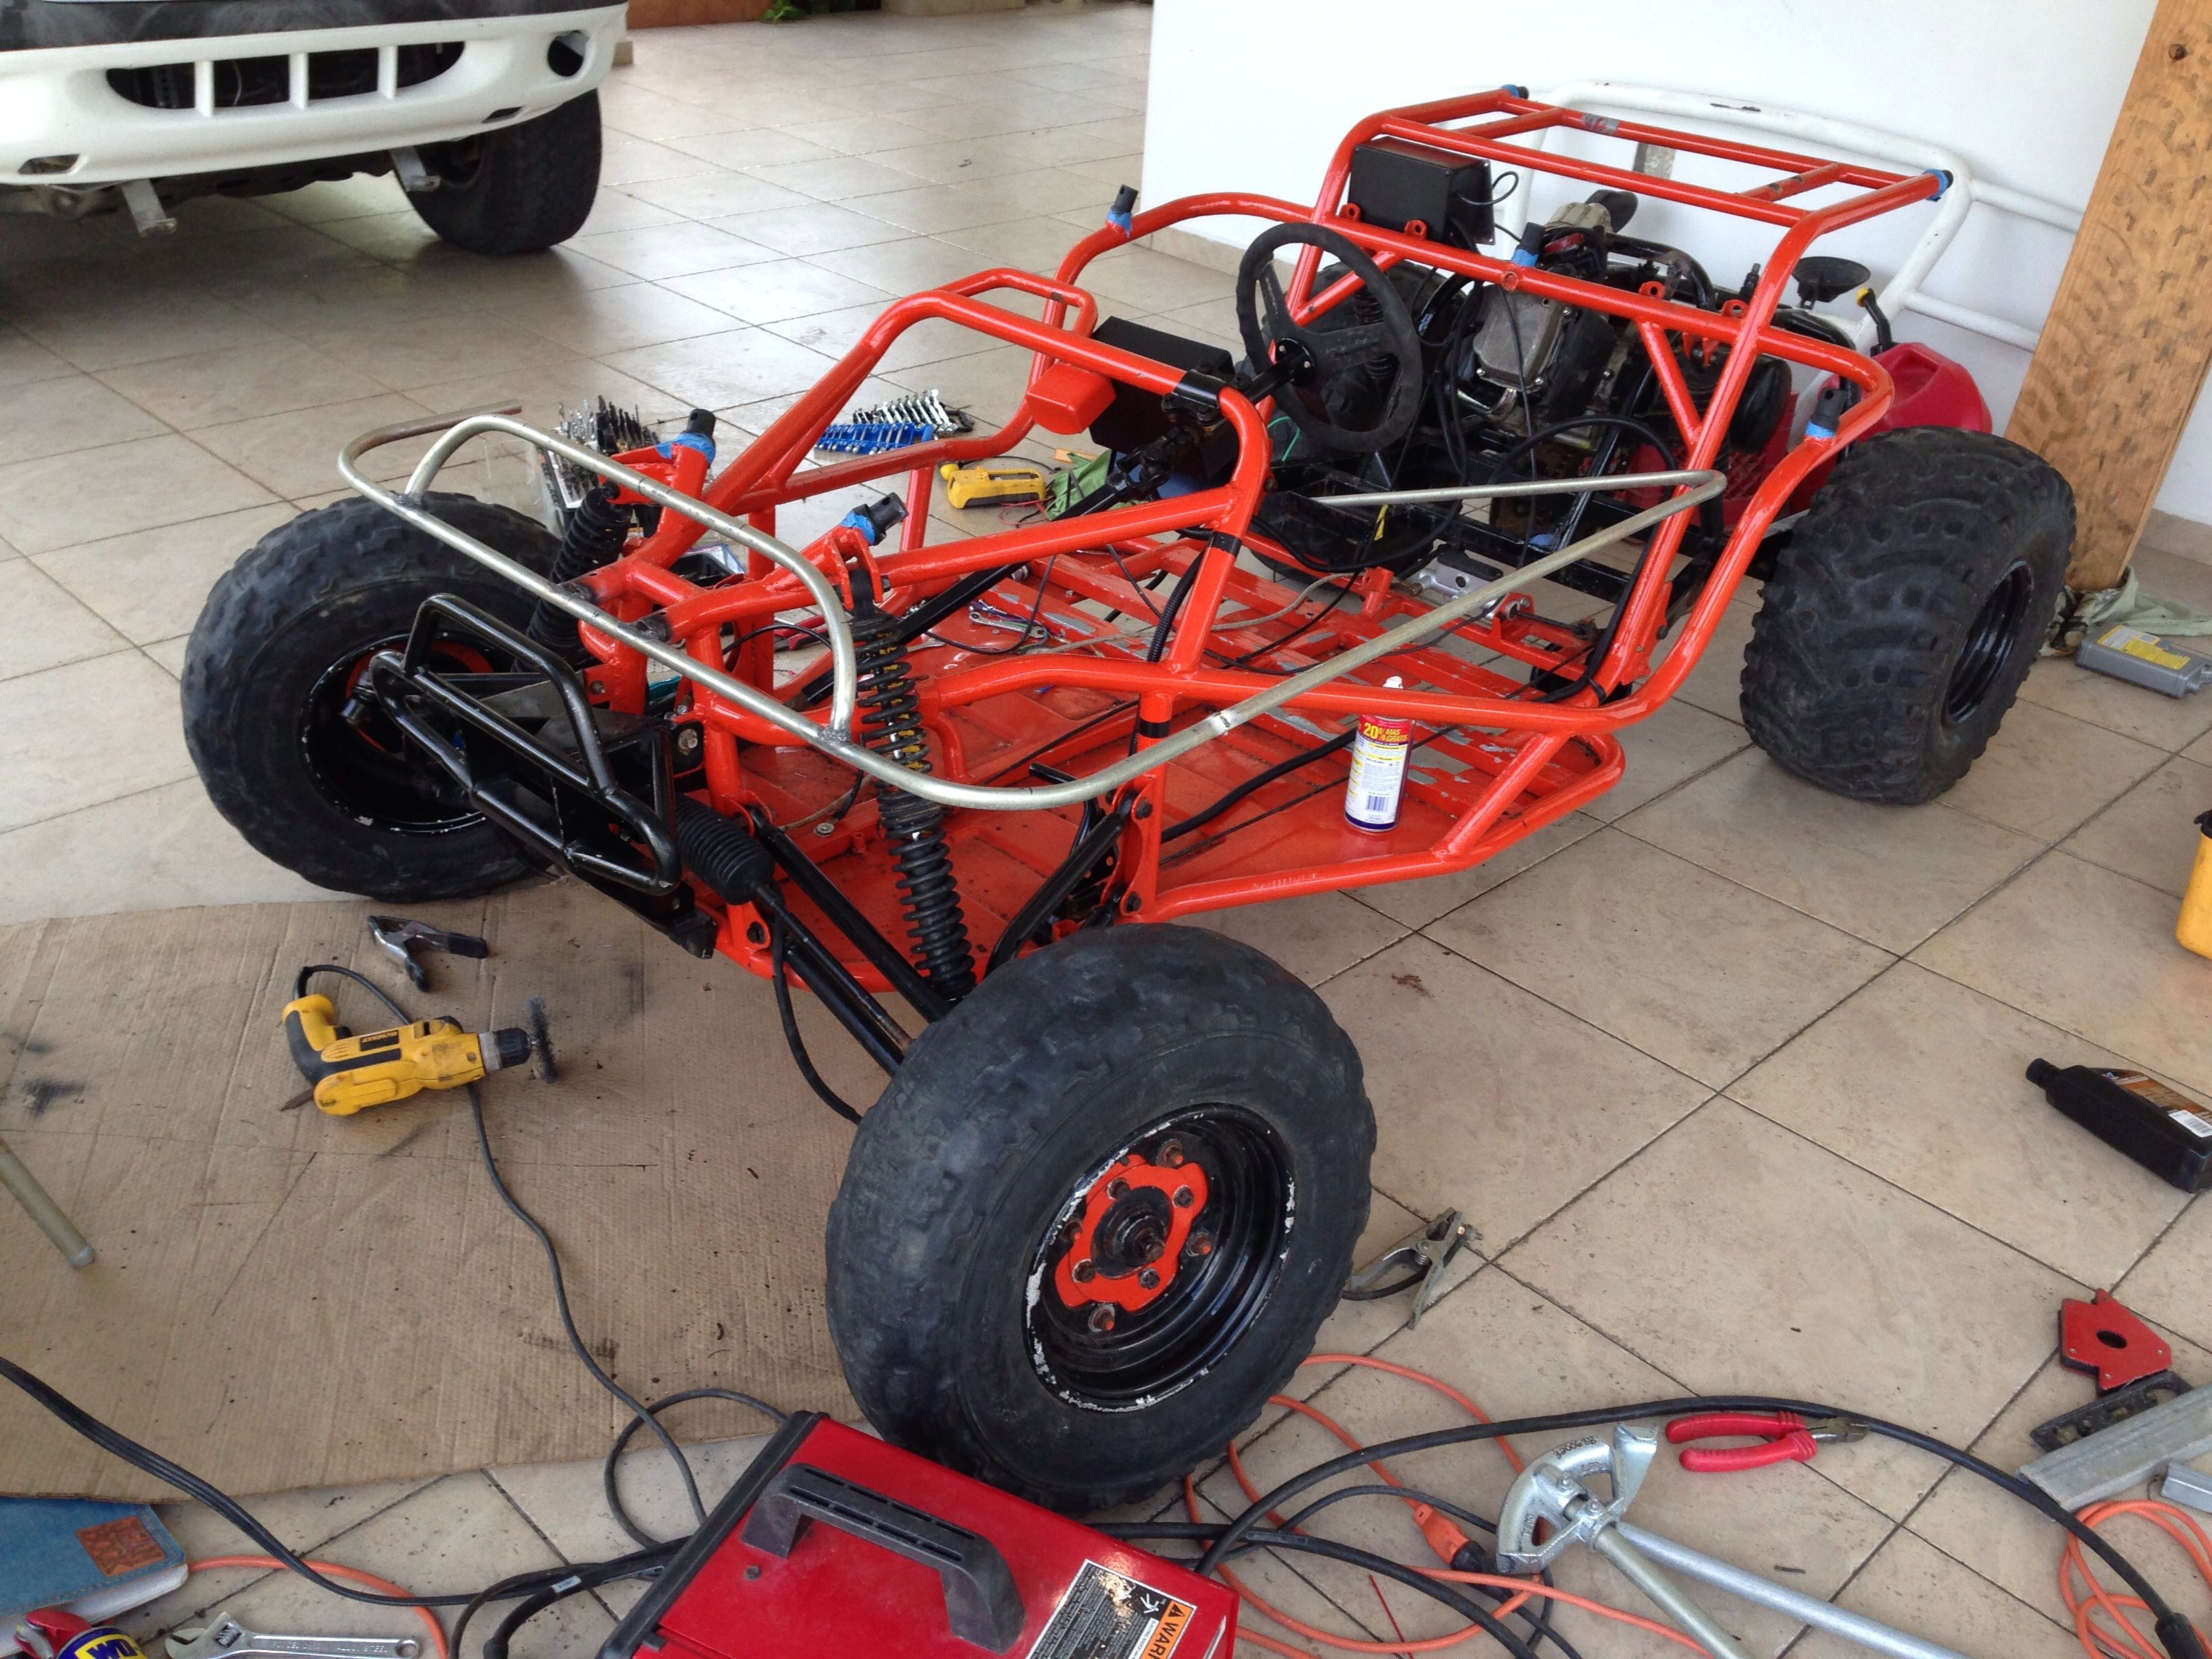 Go-kart modifications | My DIY | Pinterest | Vehicle, Cars and Atv